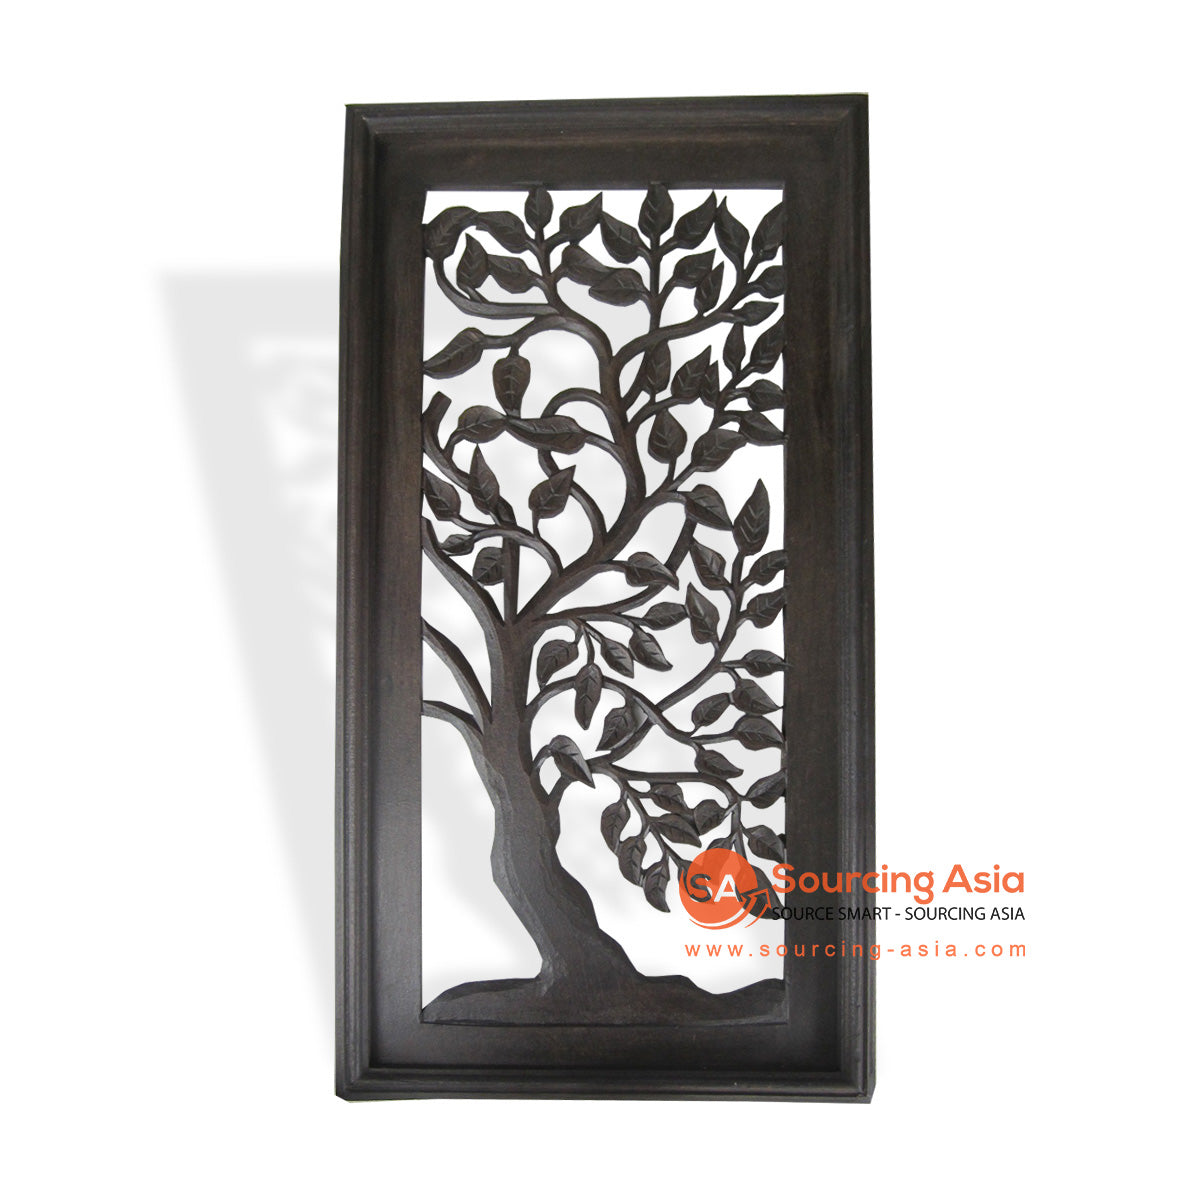 LUH024-1BR PANEL TREE WALL DECORATION